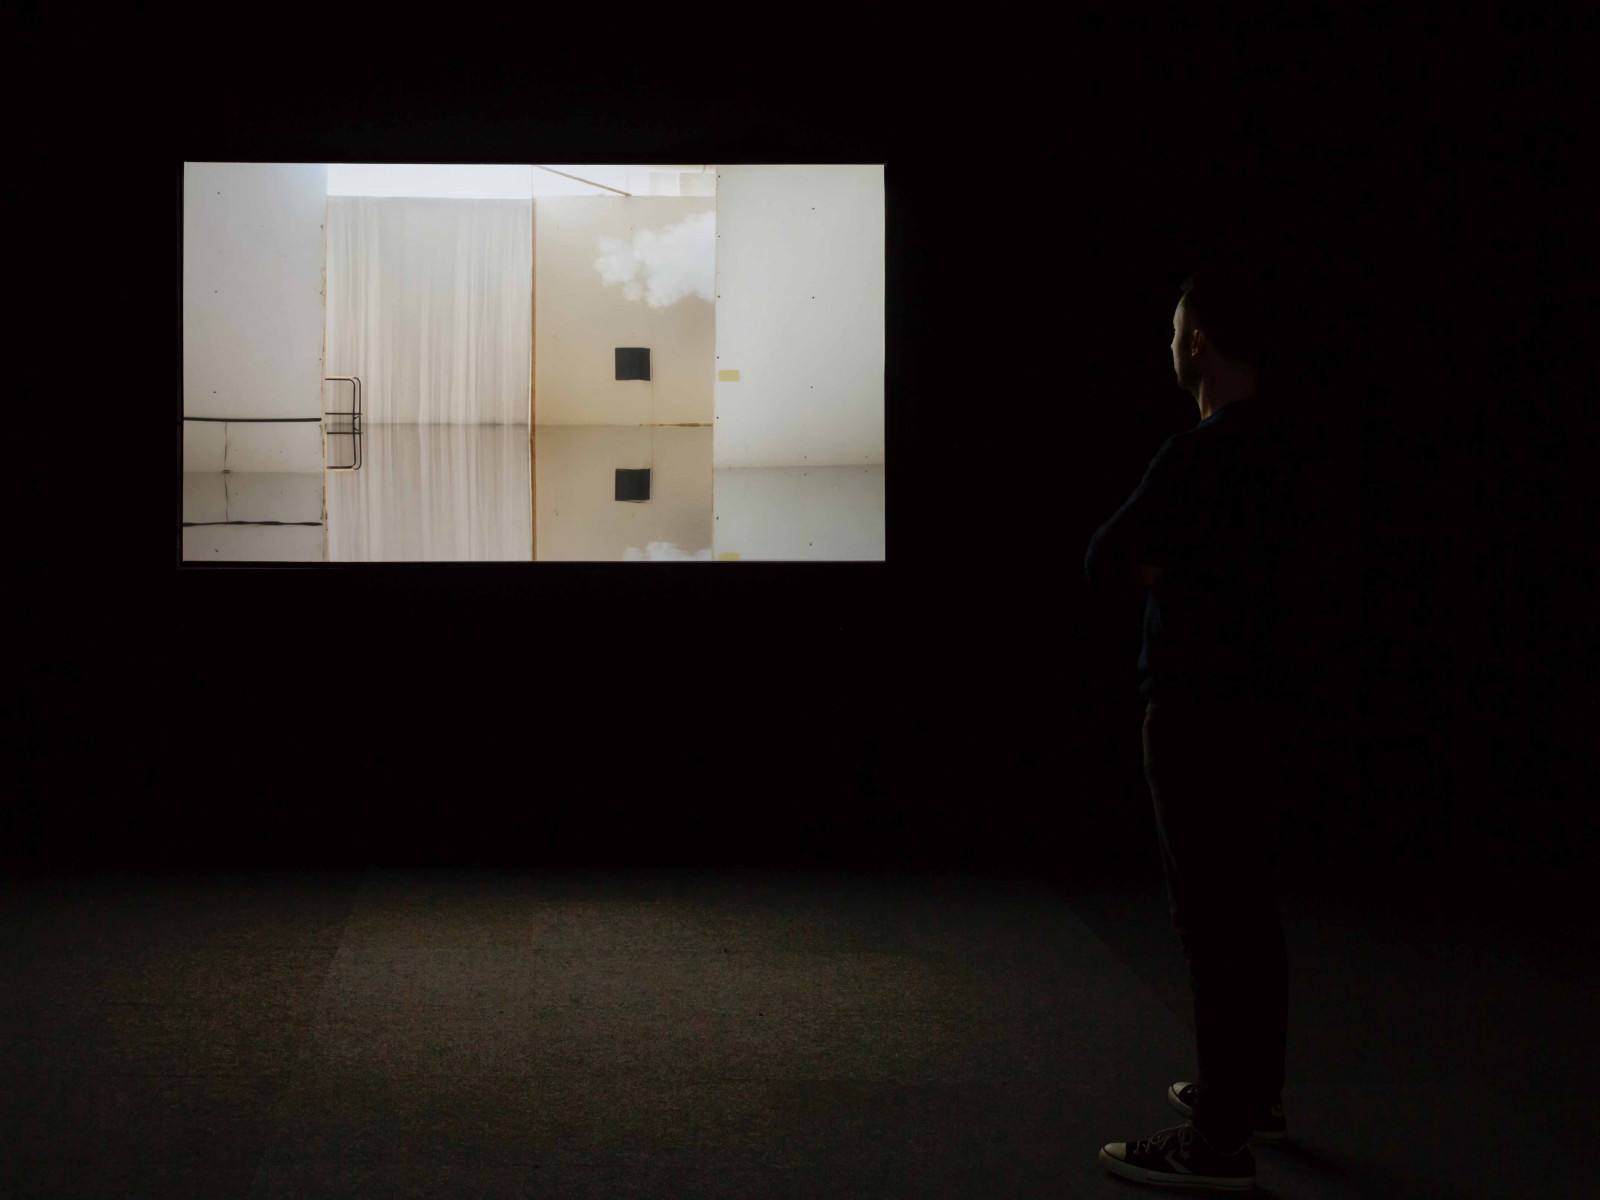 Reports to an Academy, RHA, Dublin, 2015. Curated by Patrick T. Murphy. Photo: Mike Hannon.